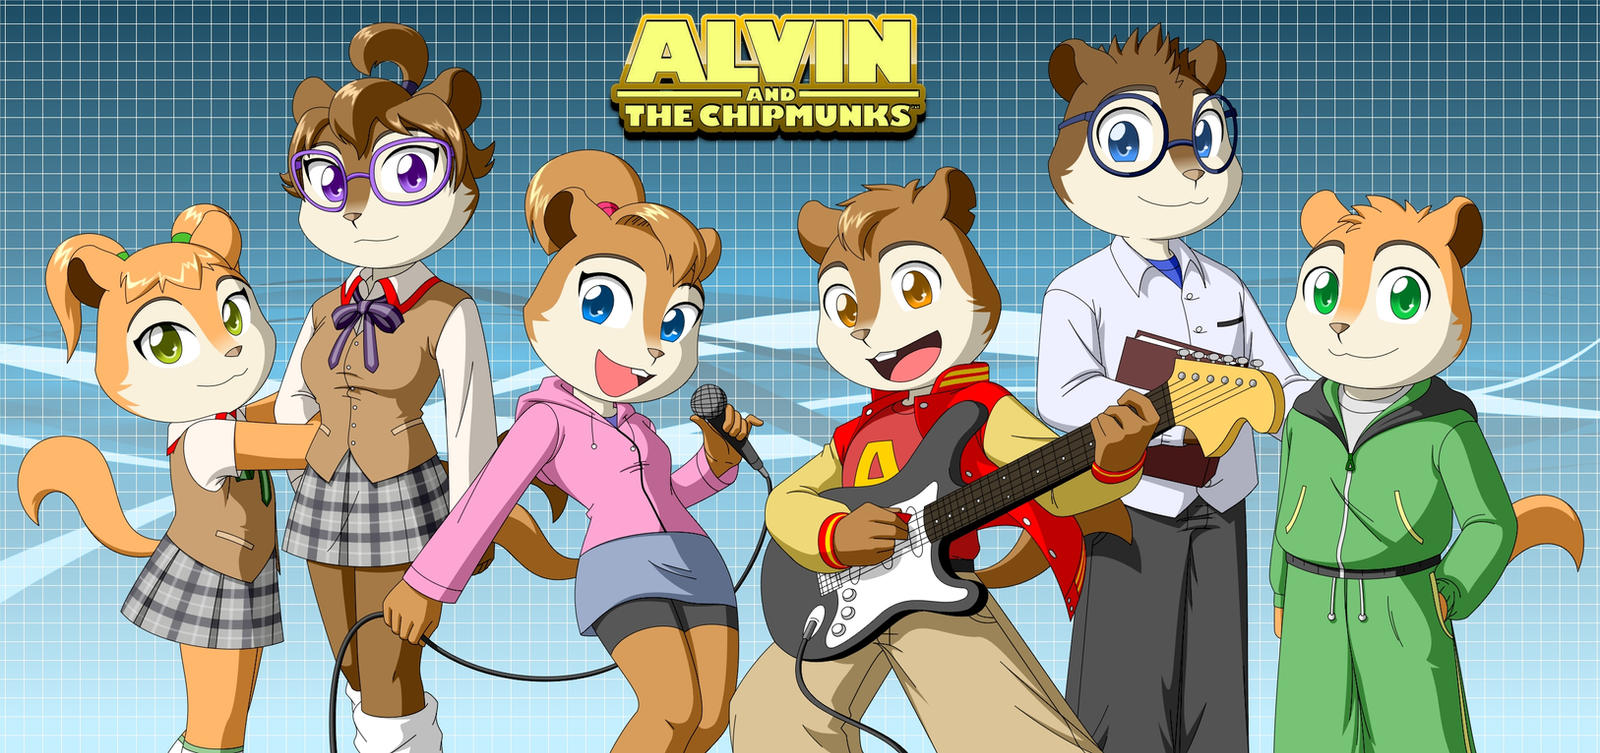 The Chipmunks And Chipettes 2 By Pak009 On DeviantArt